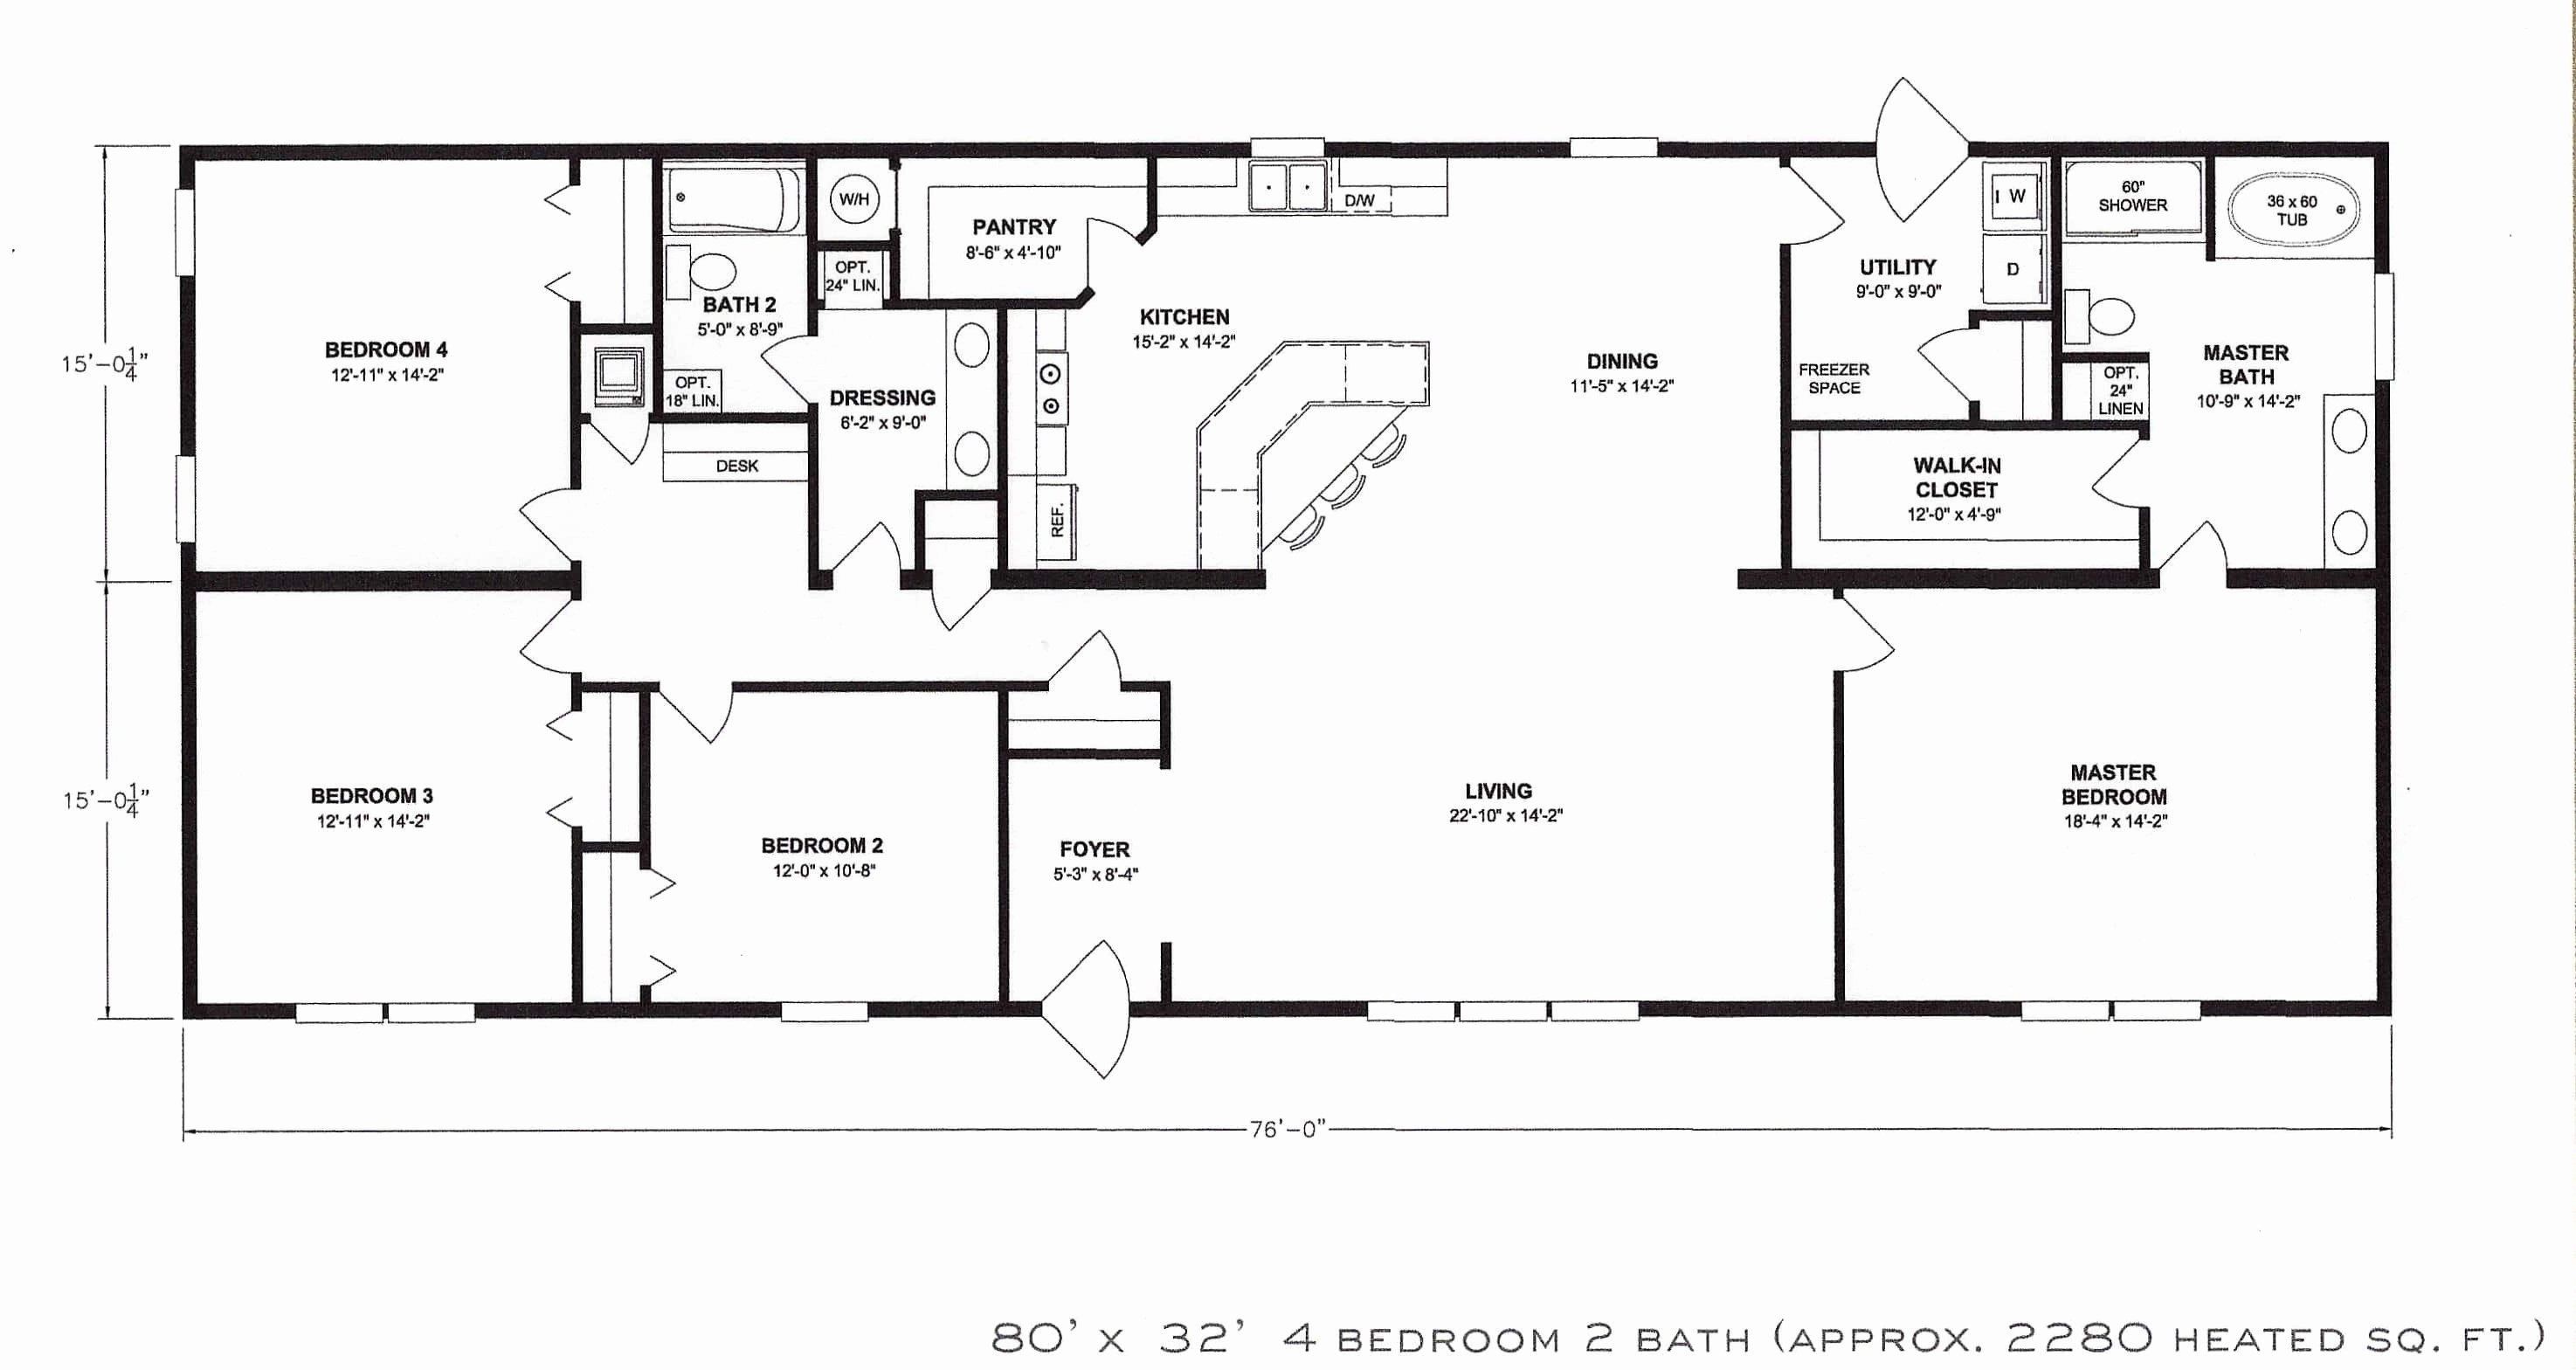 Best Four Bedroom House Plans Unique Single Story Affordable 4 Simple Modern Residential Bedrooms 4 With Pictures